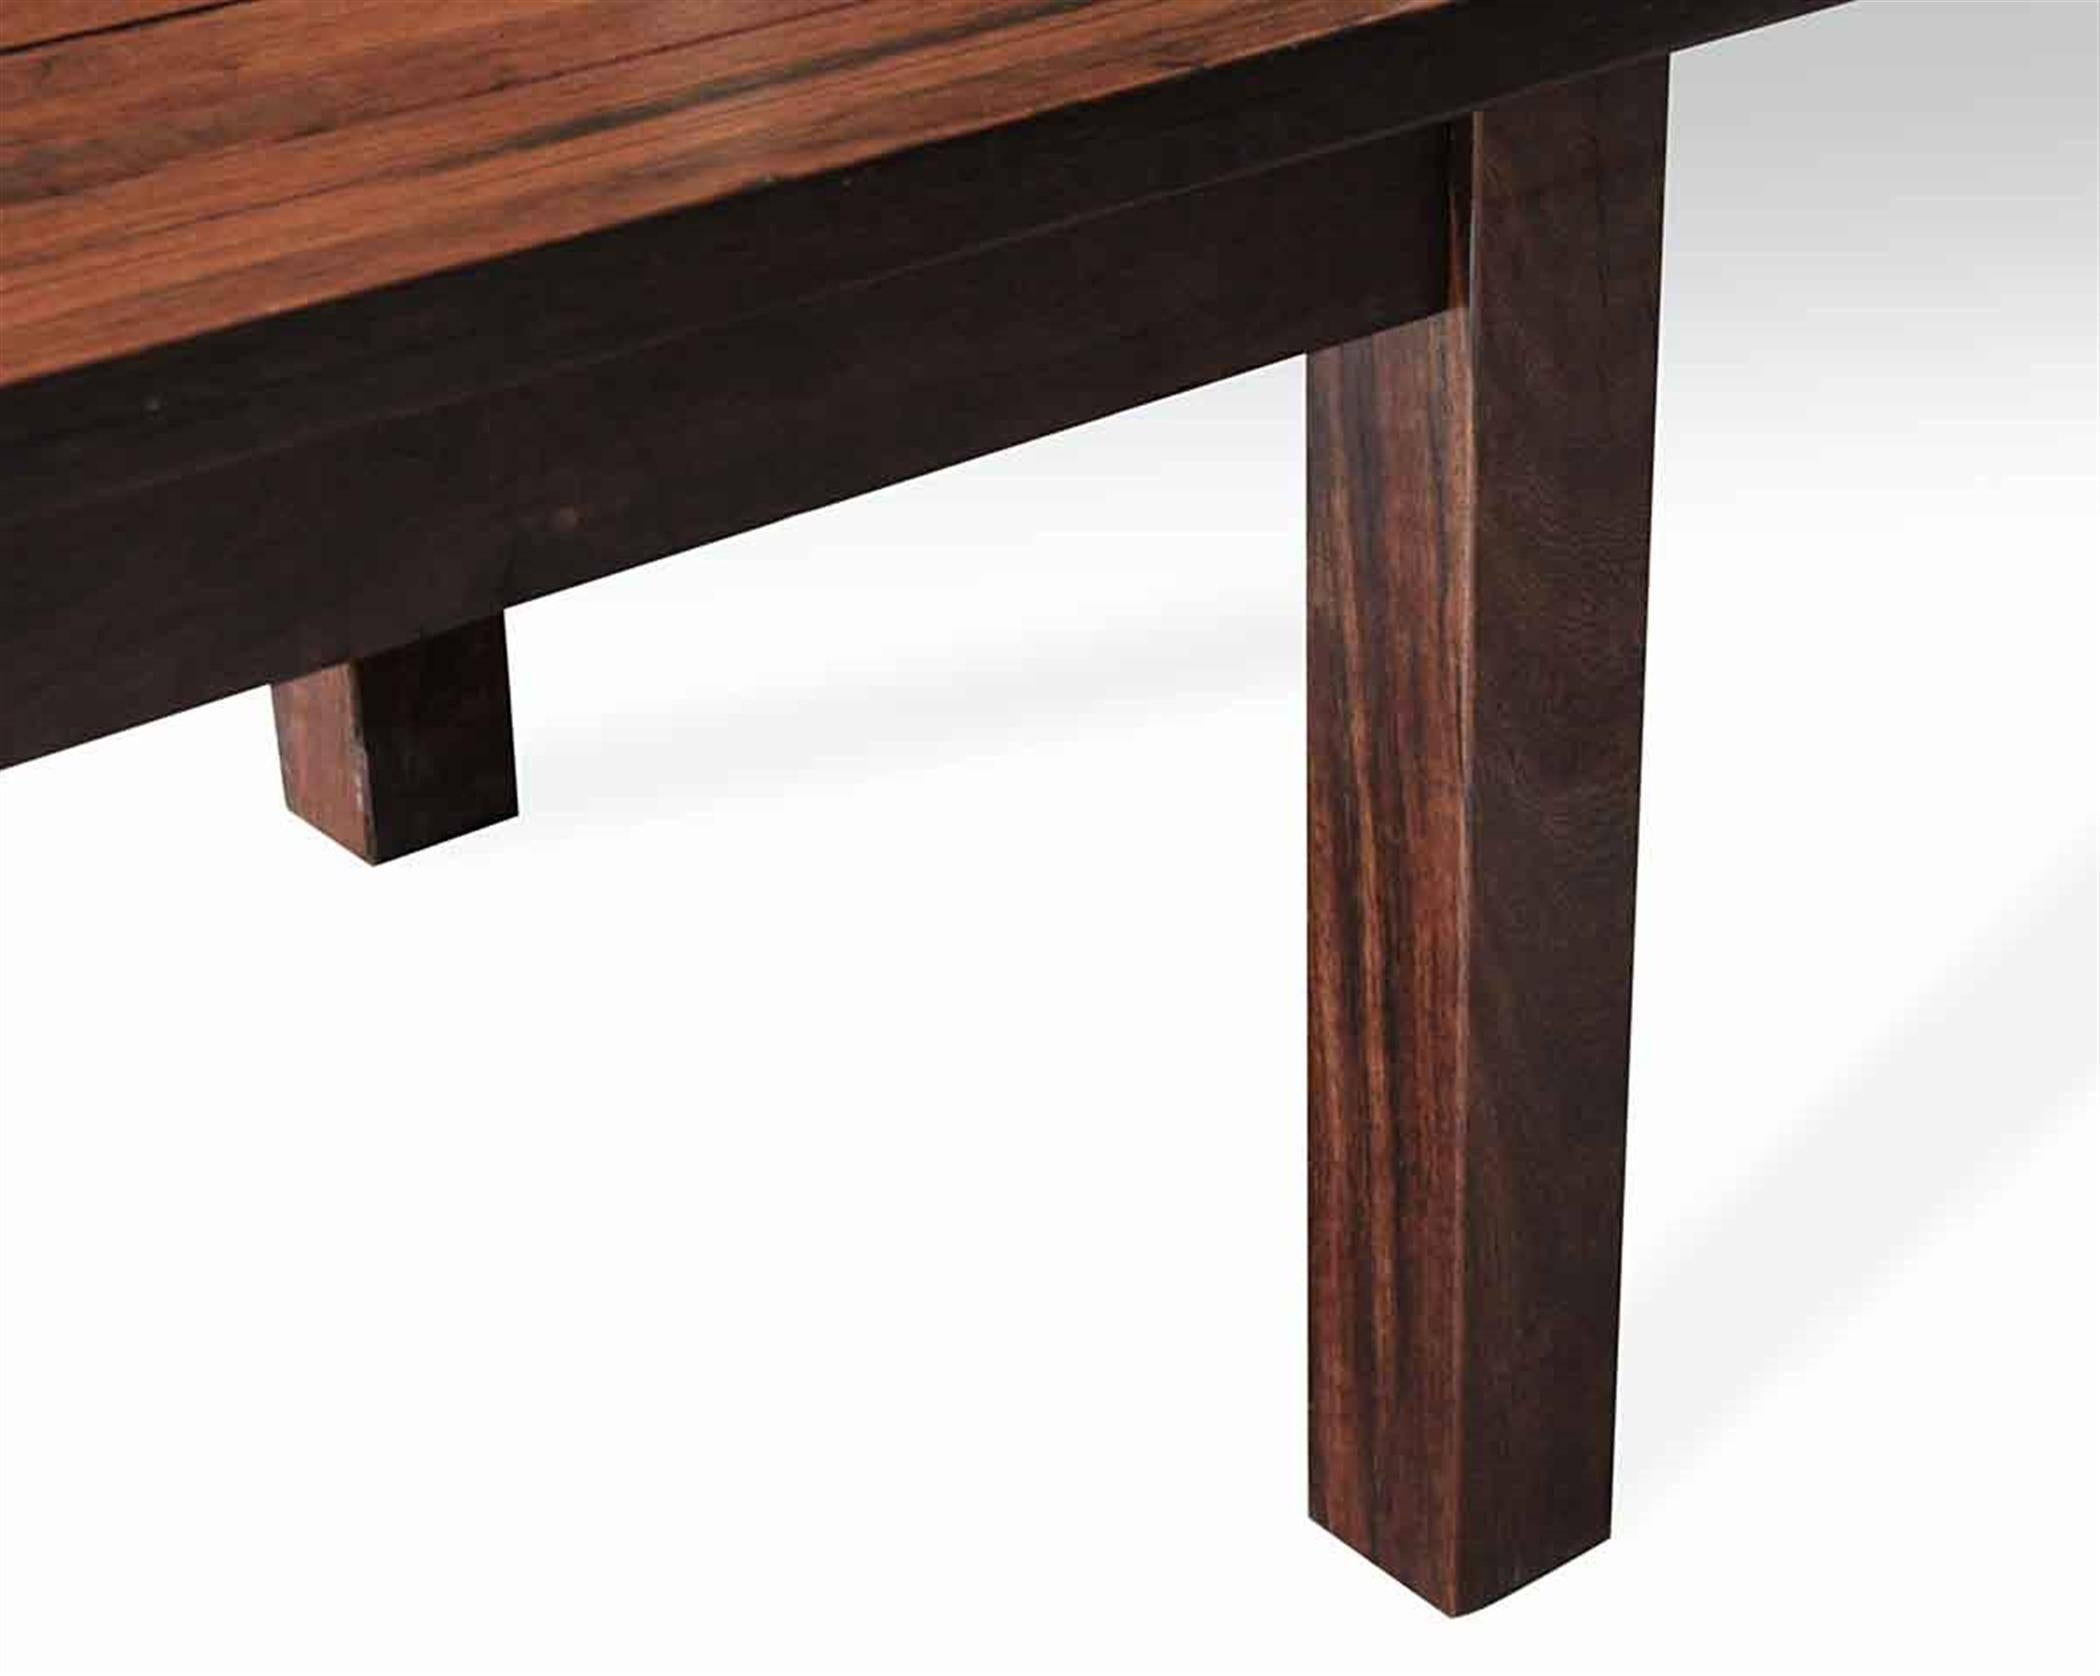 Ipe Wood Decking Plank Farm Table With Square Legs From The South Street  Seaport For Sale